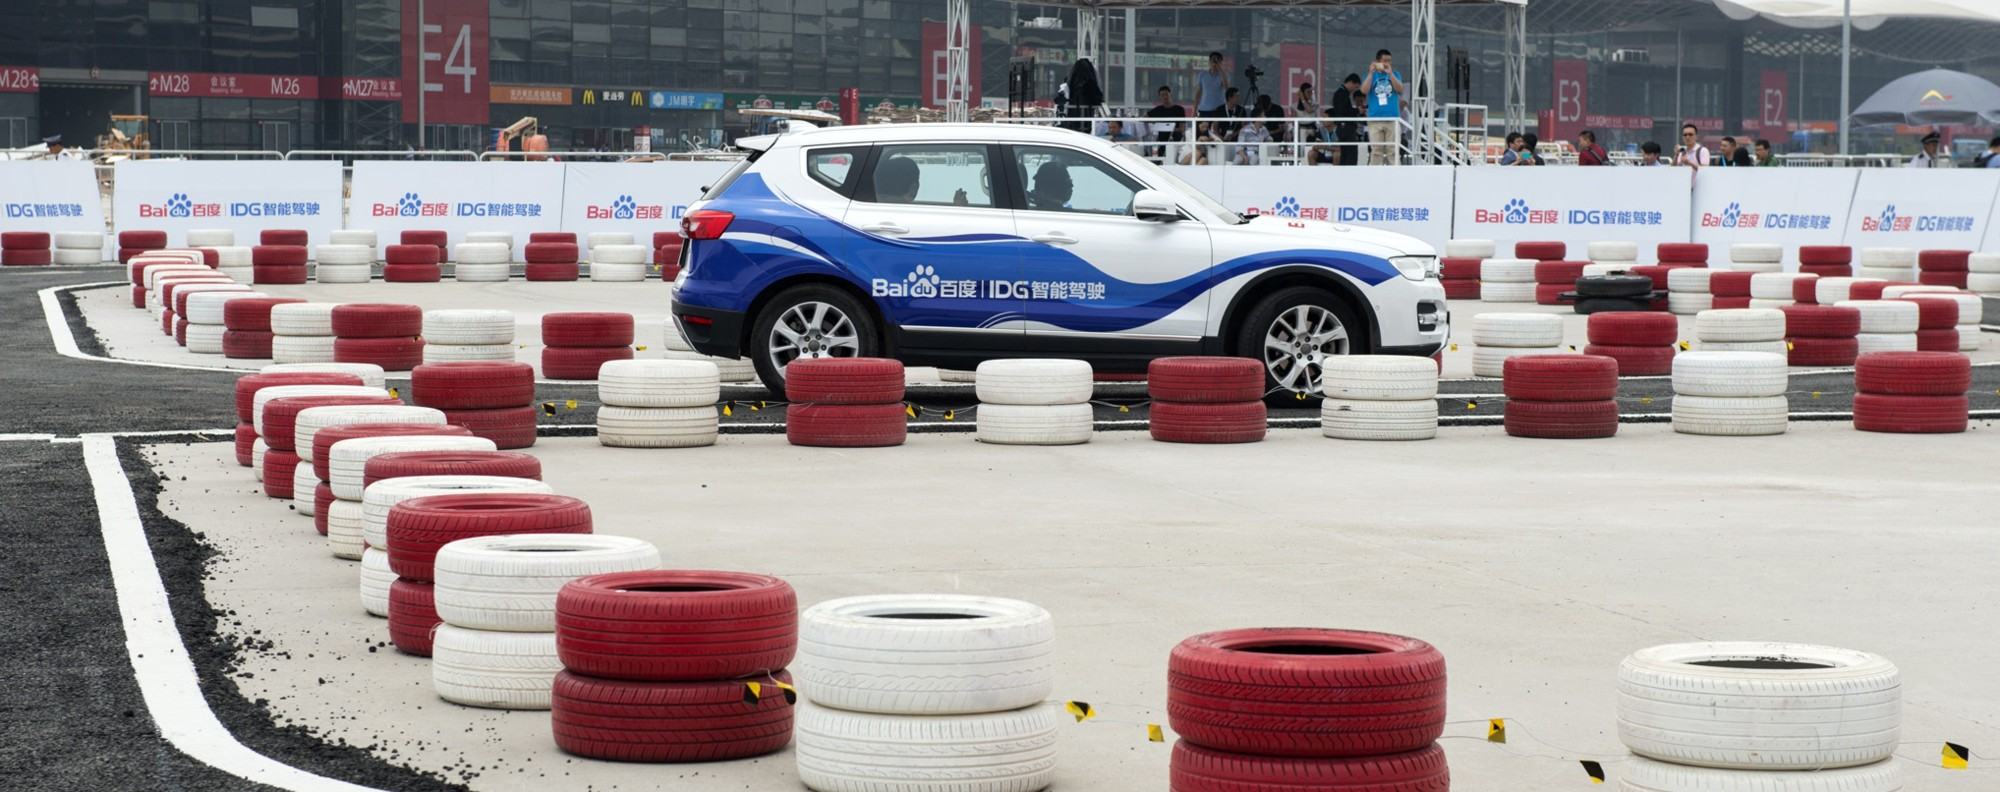 Chinas Self Driving Vehicles On Track To Take Global Leadership Auto Electrical Circuit Short Open Tester Testing For Car Repair The Autonomous Vehicle Tested At Ces Asia In Shanghai